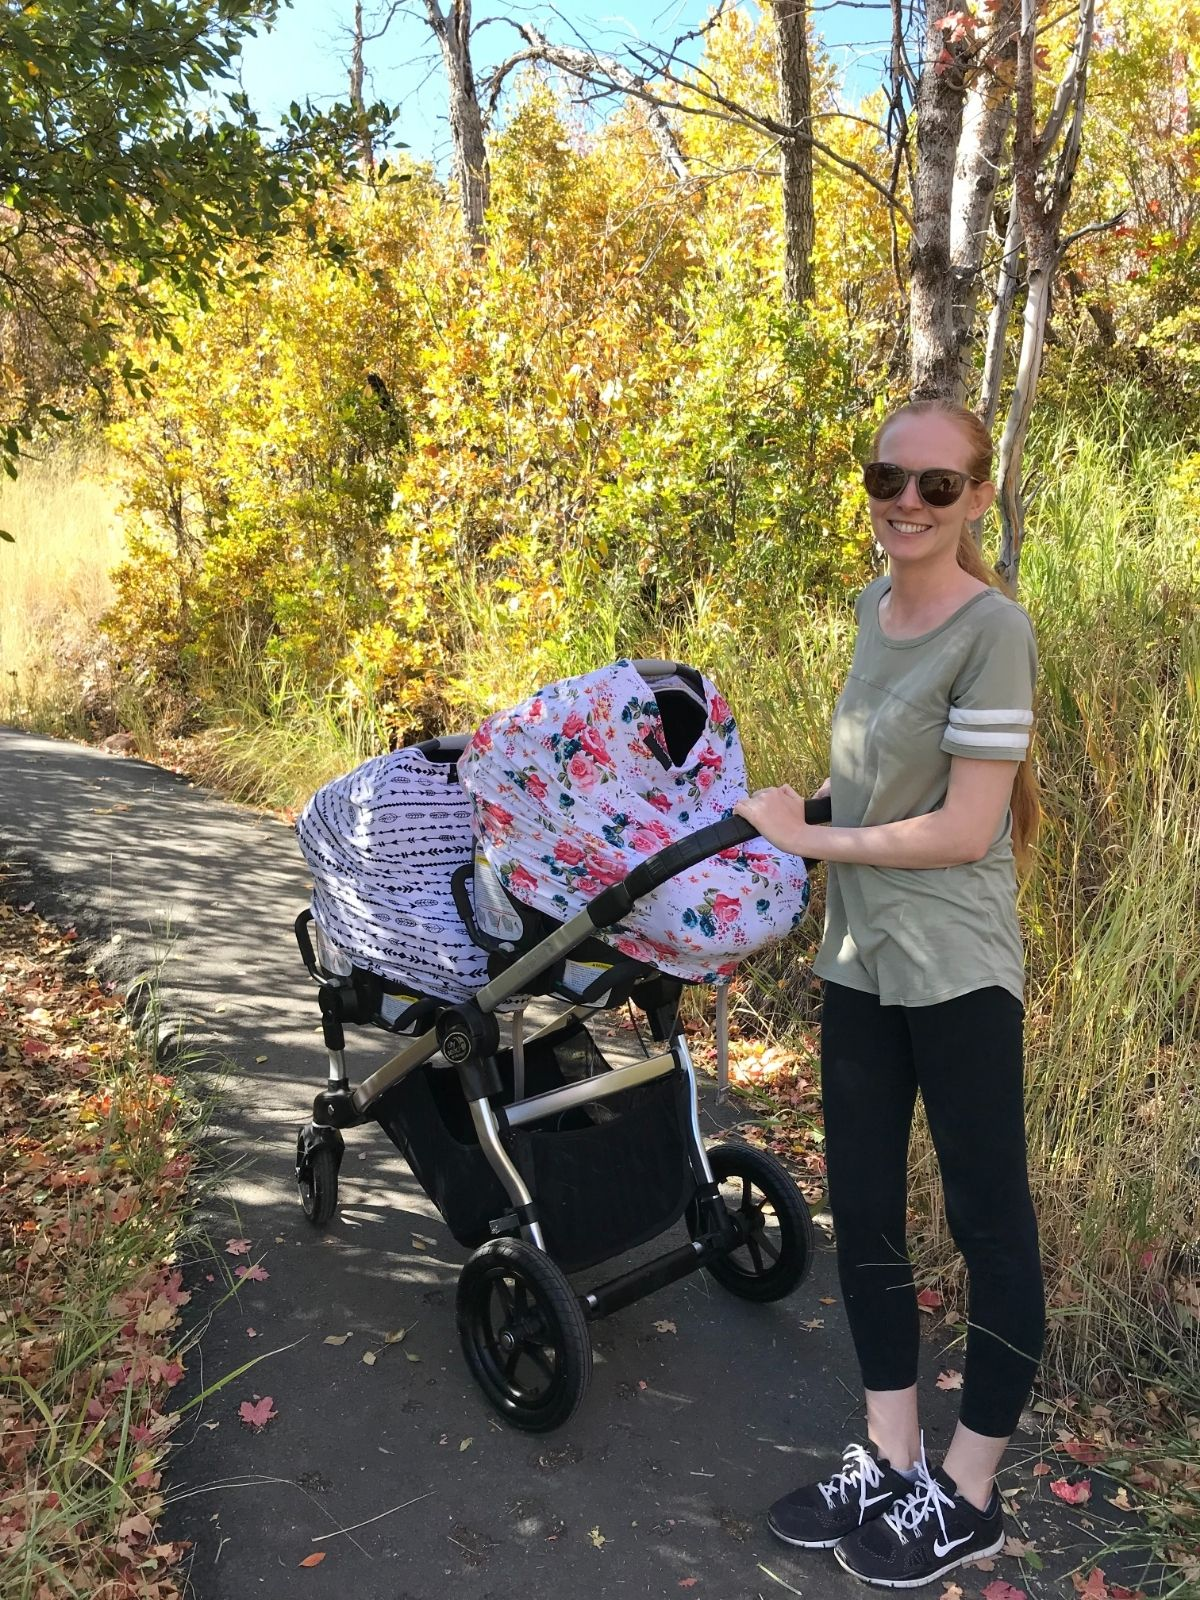 mom pushing double stroller with twins in car seats with car seat covers on a path in the fall